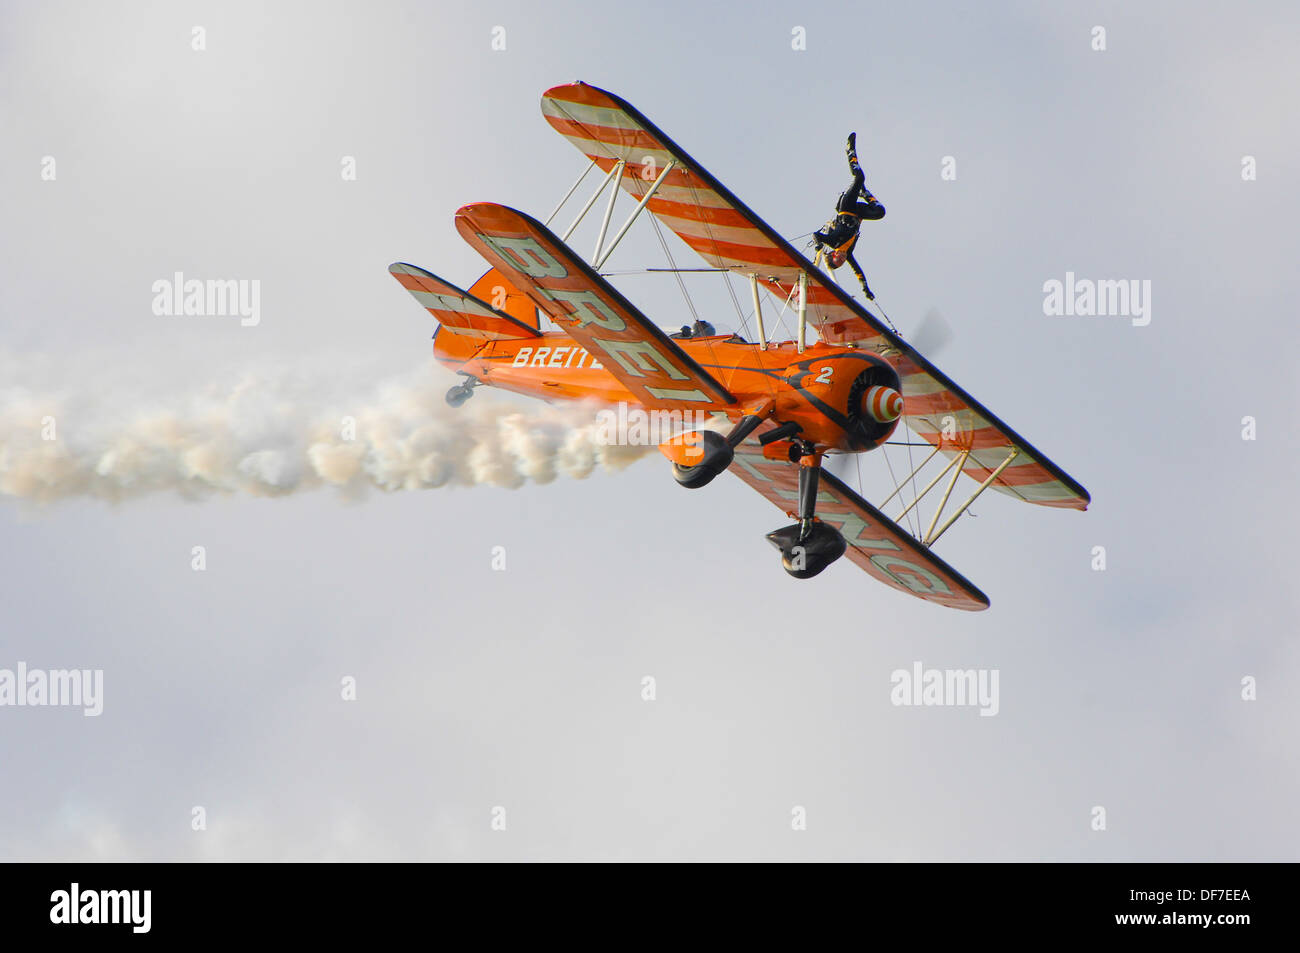 Breitling wing walkers at Sywell airport - Stock Image